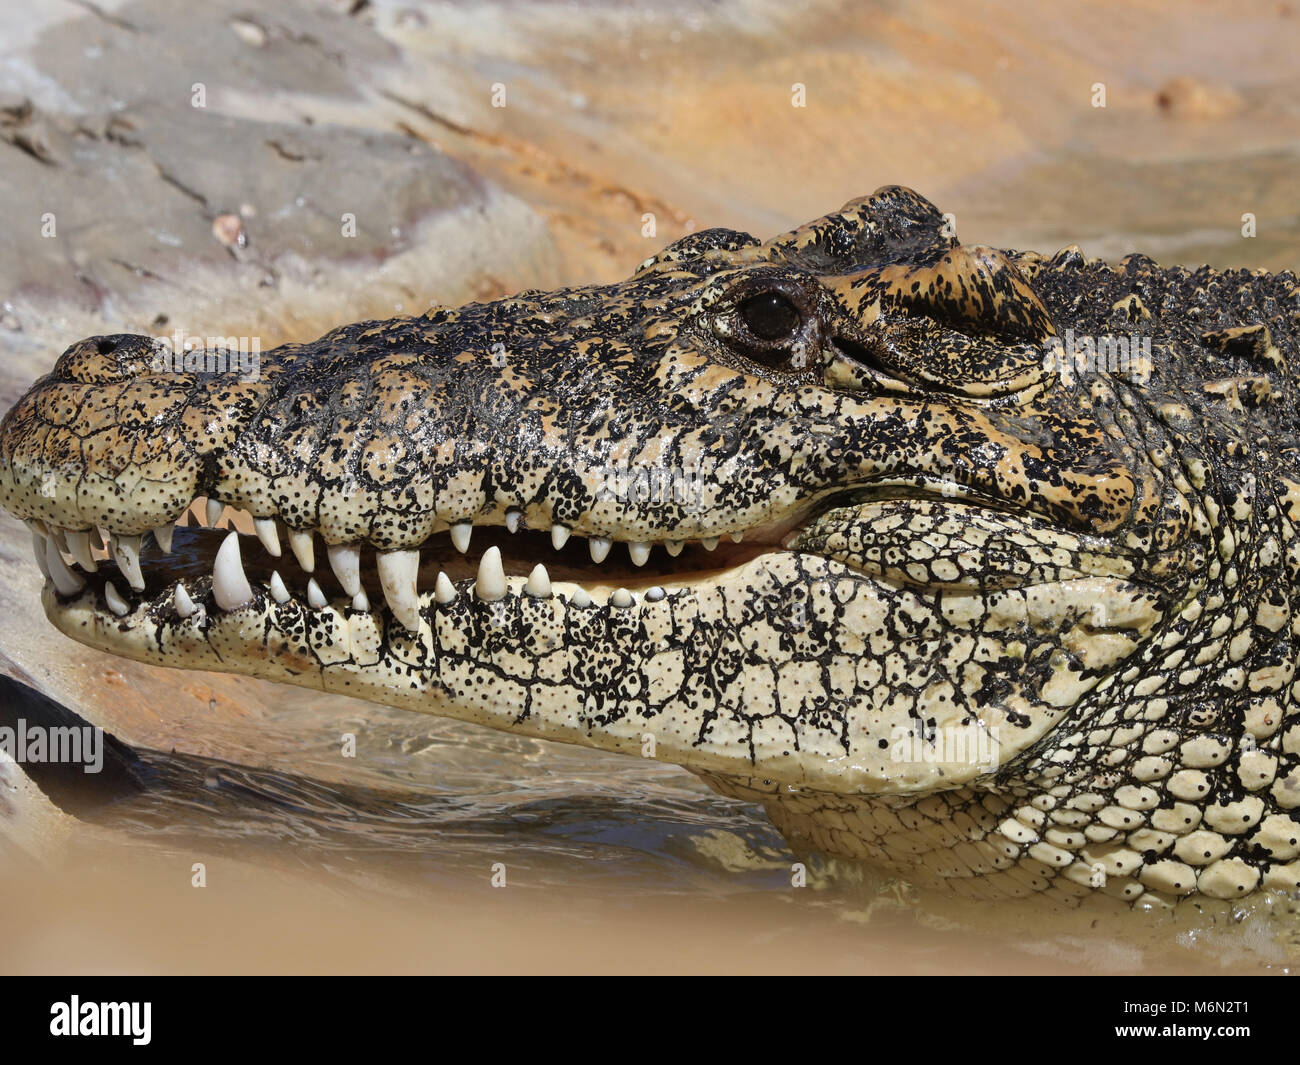 Multi colored Alligator showing lots of teeth closeup - Stock Image